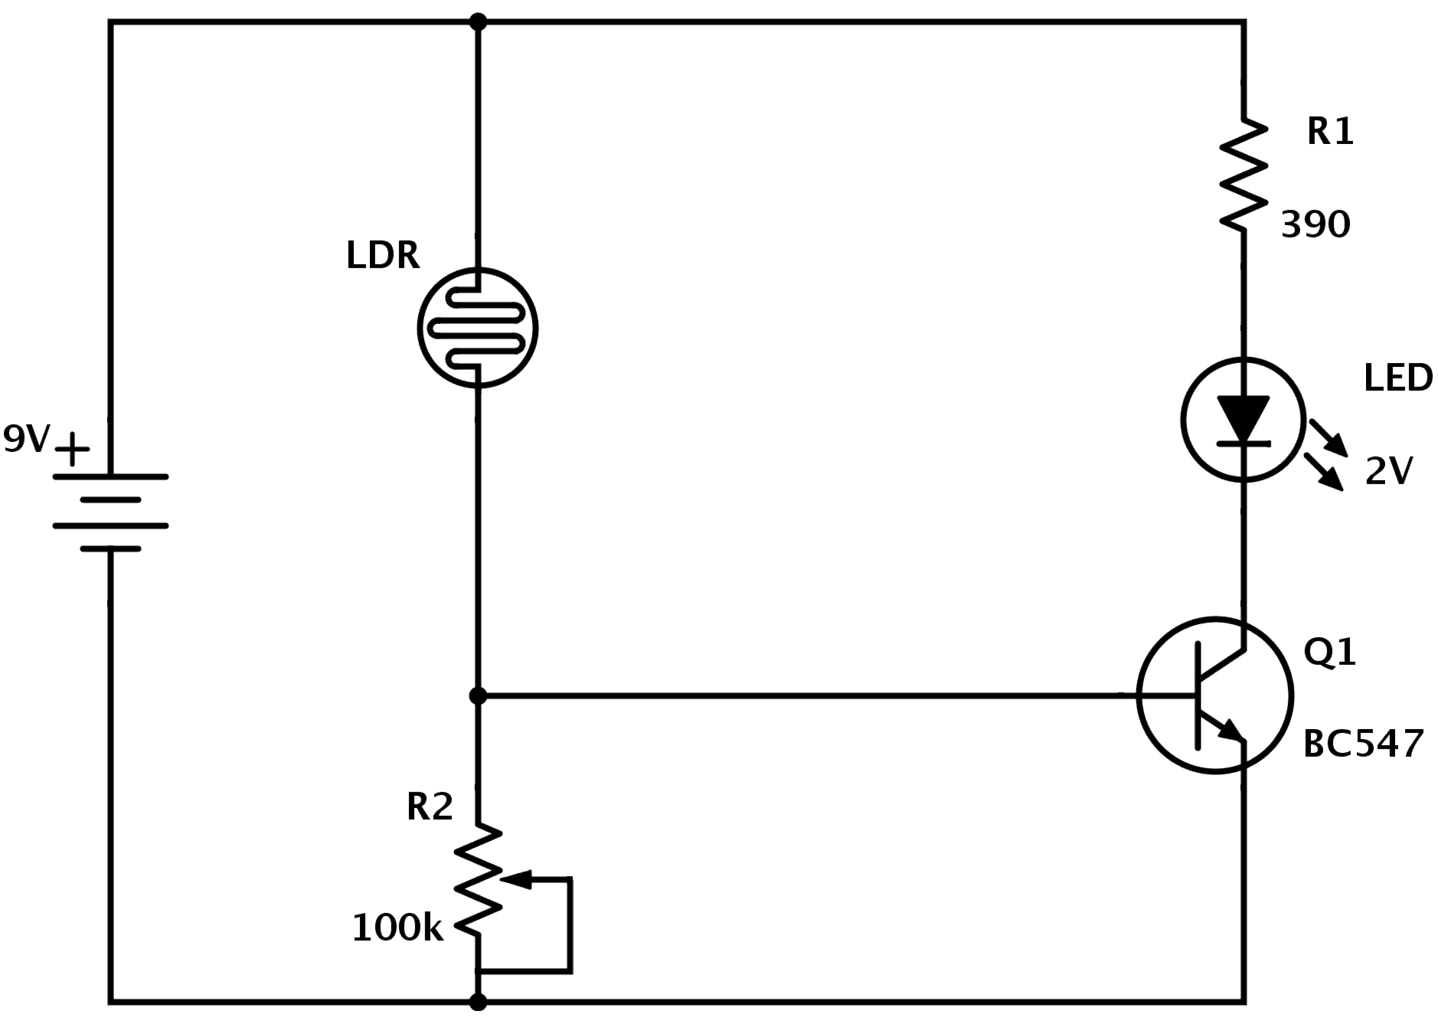 Photocell Light Switch Wiring Diagram Auto Electrical Trojan F32 Circuit How To Read And Understand Any Schematic